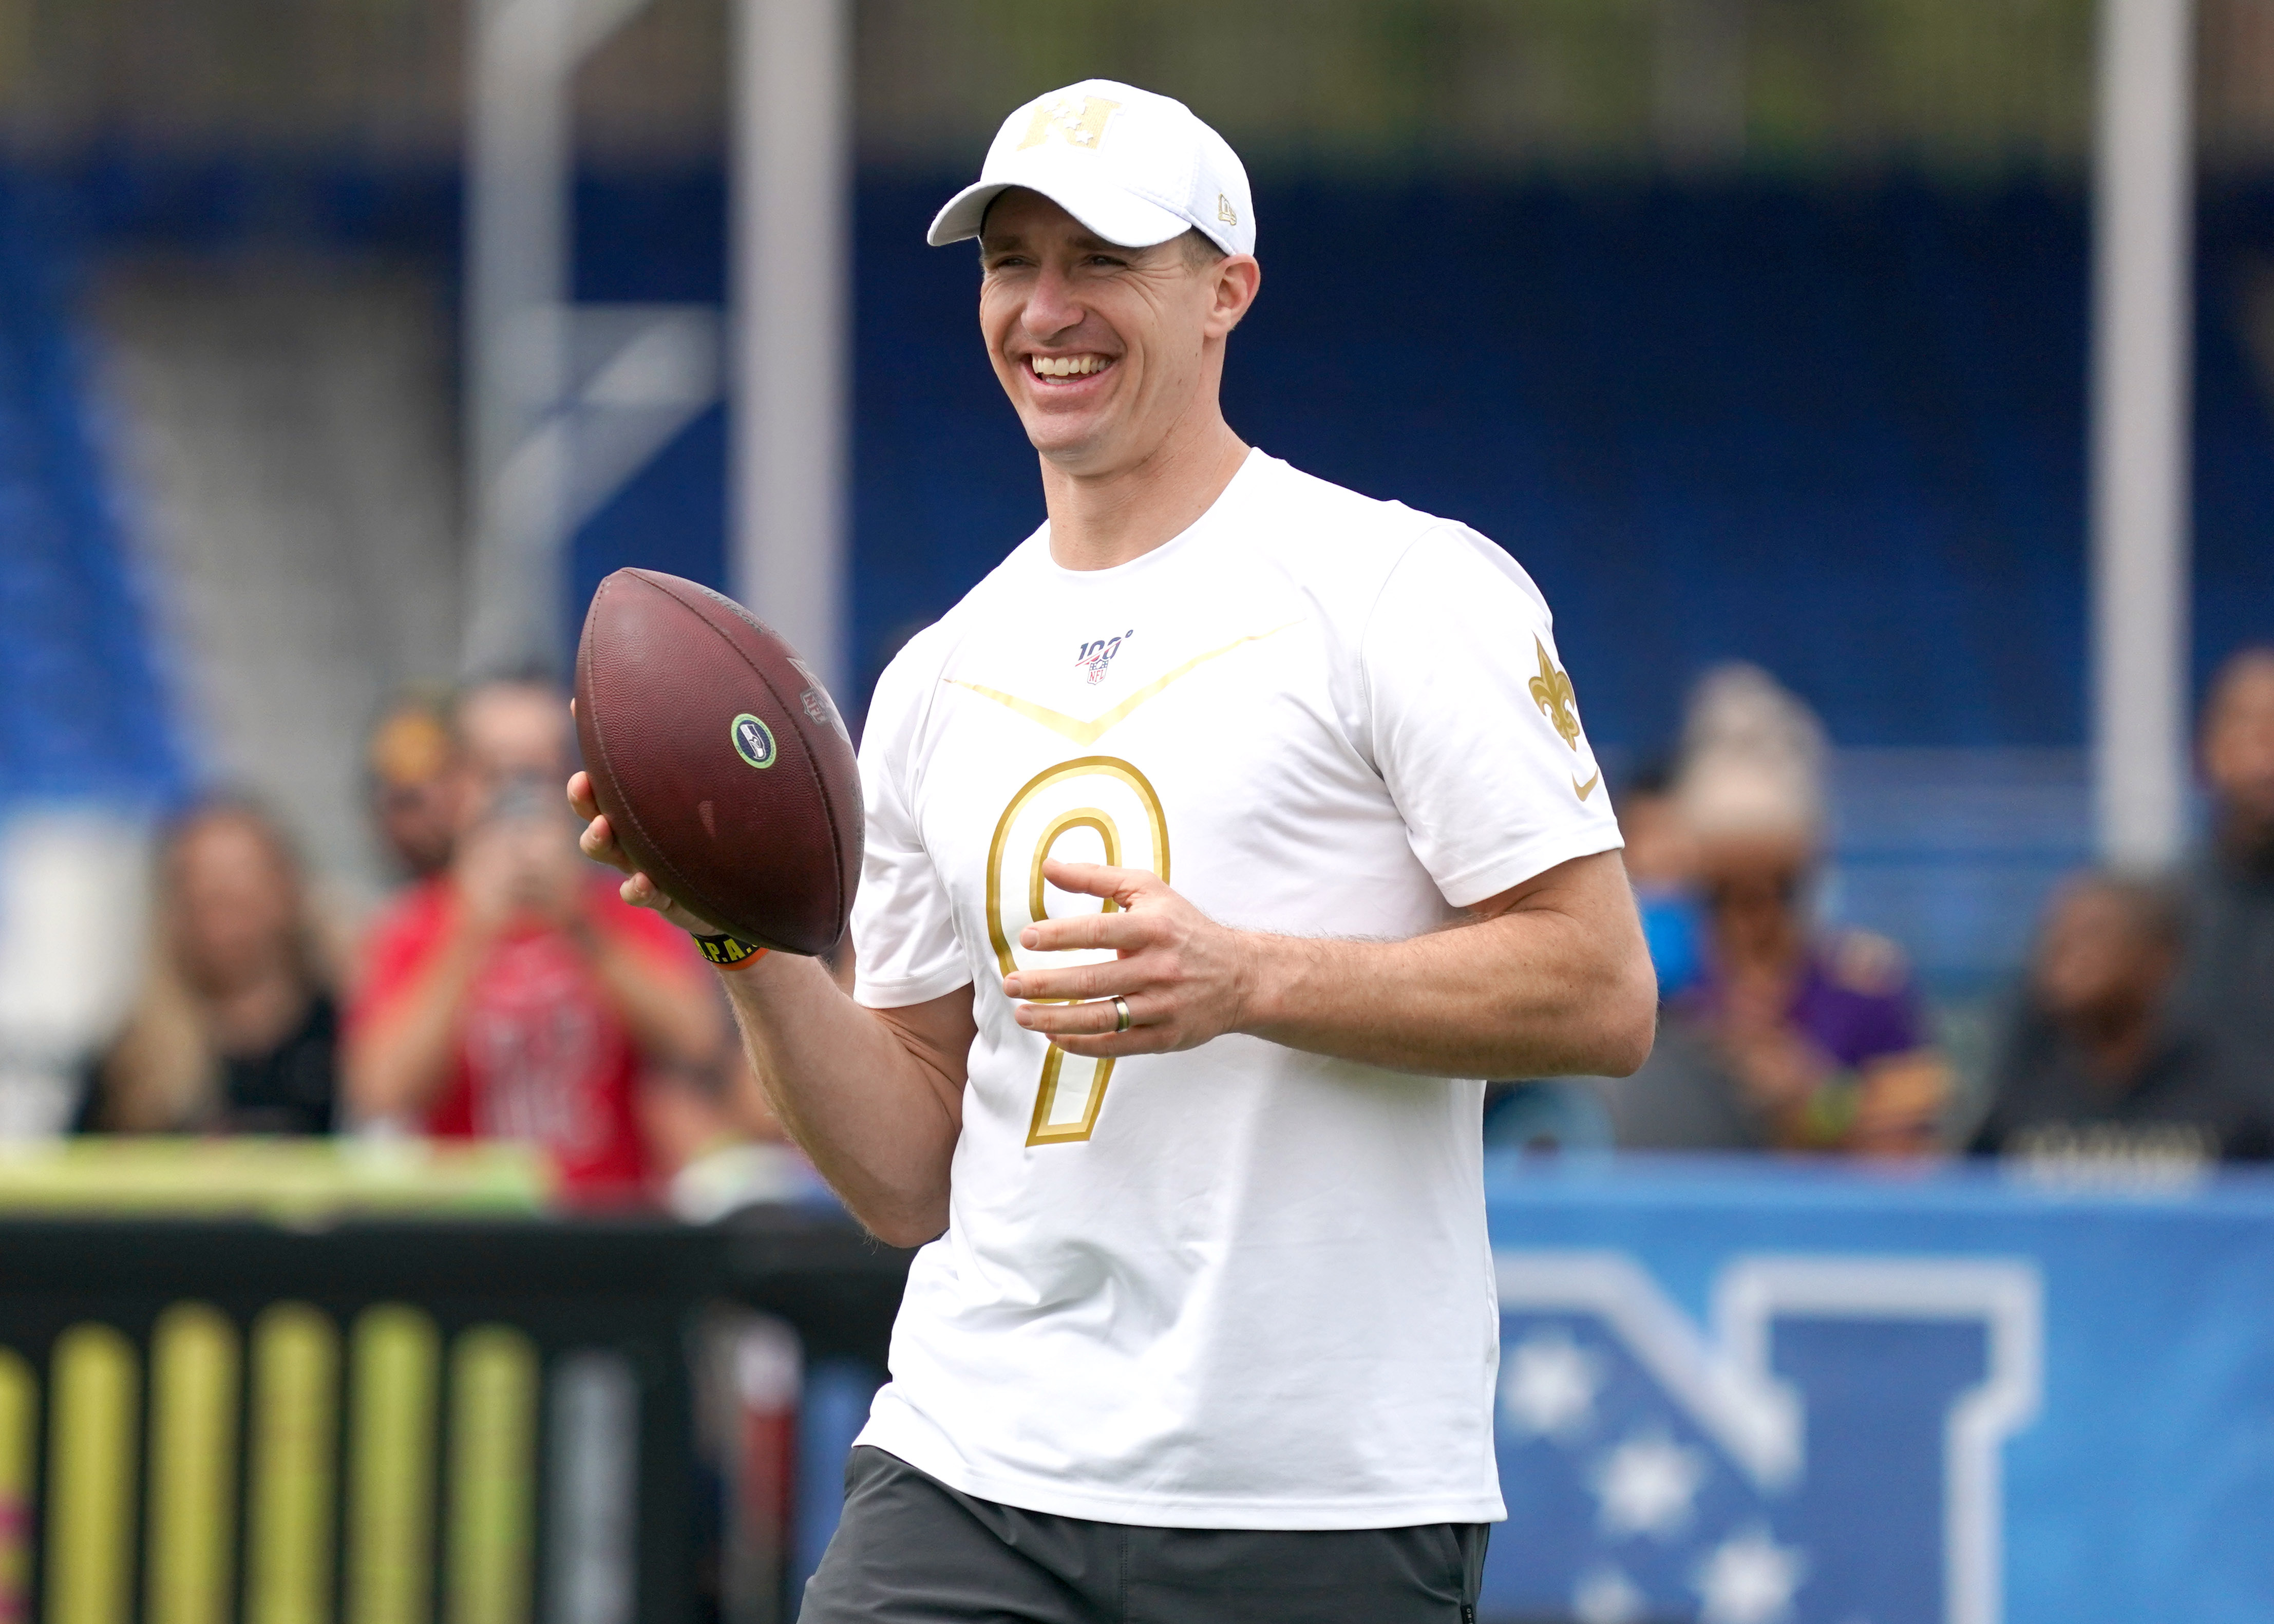 New Orleans Saints quarterback Drew Brees during NFC practice at ESPN Wide World of Sports.